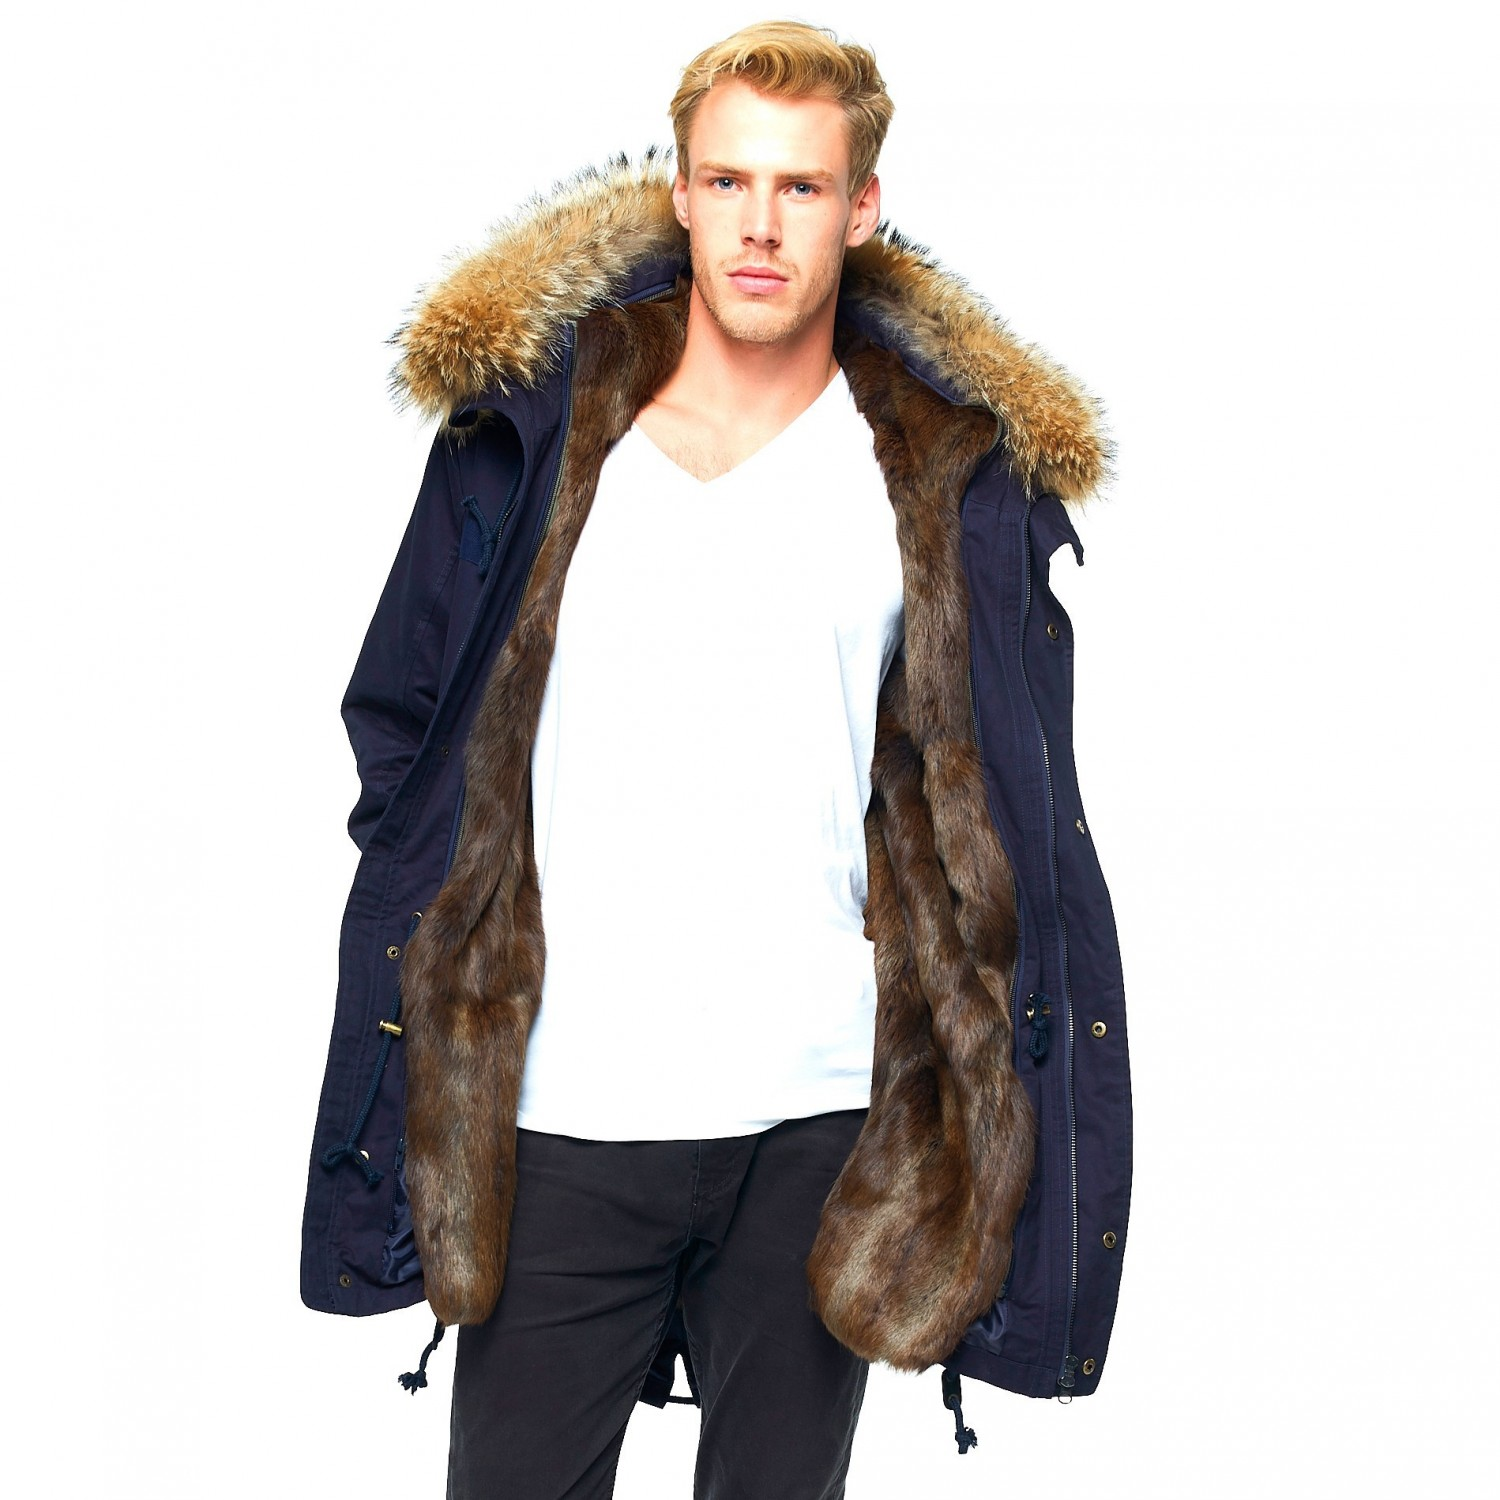 e367b8b7881f Mens Fur Lined Coat with XXL Fur